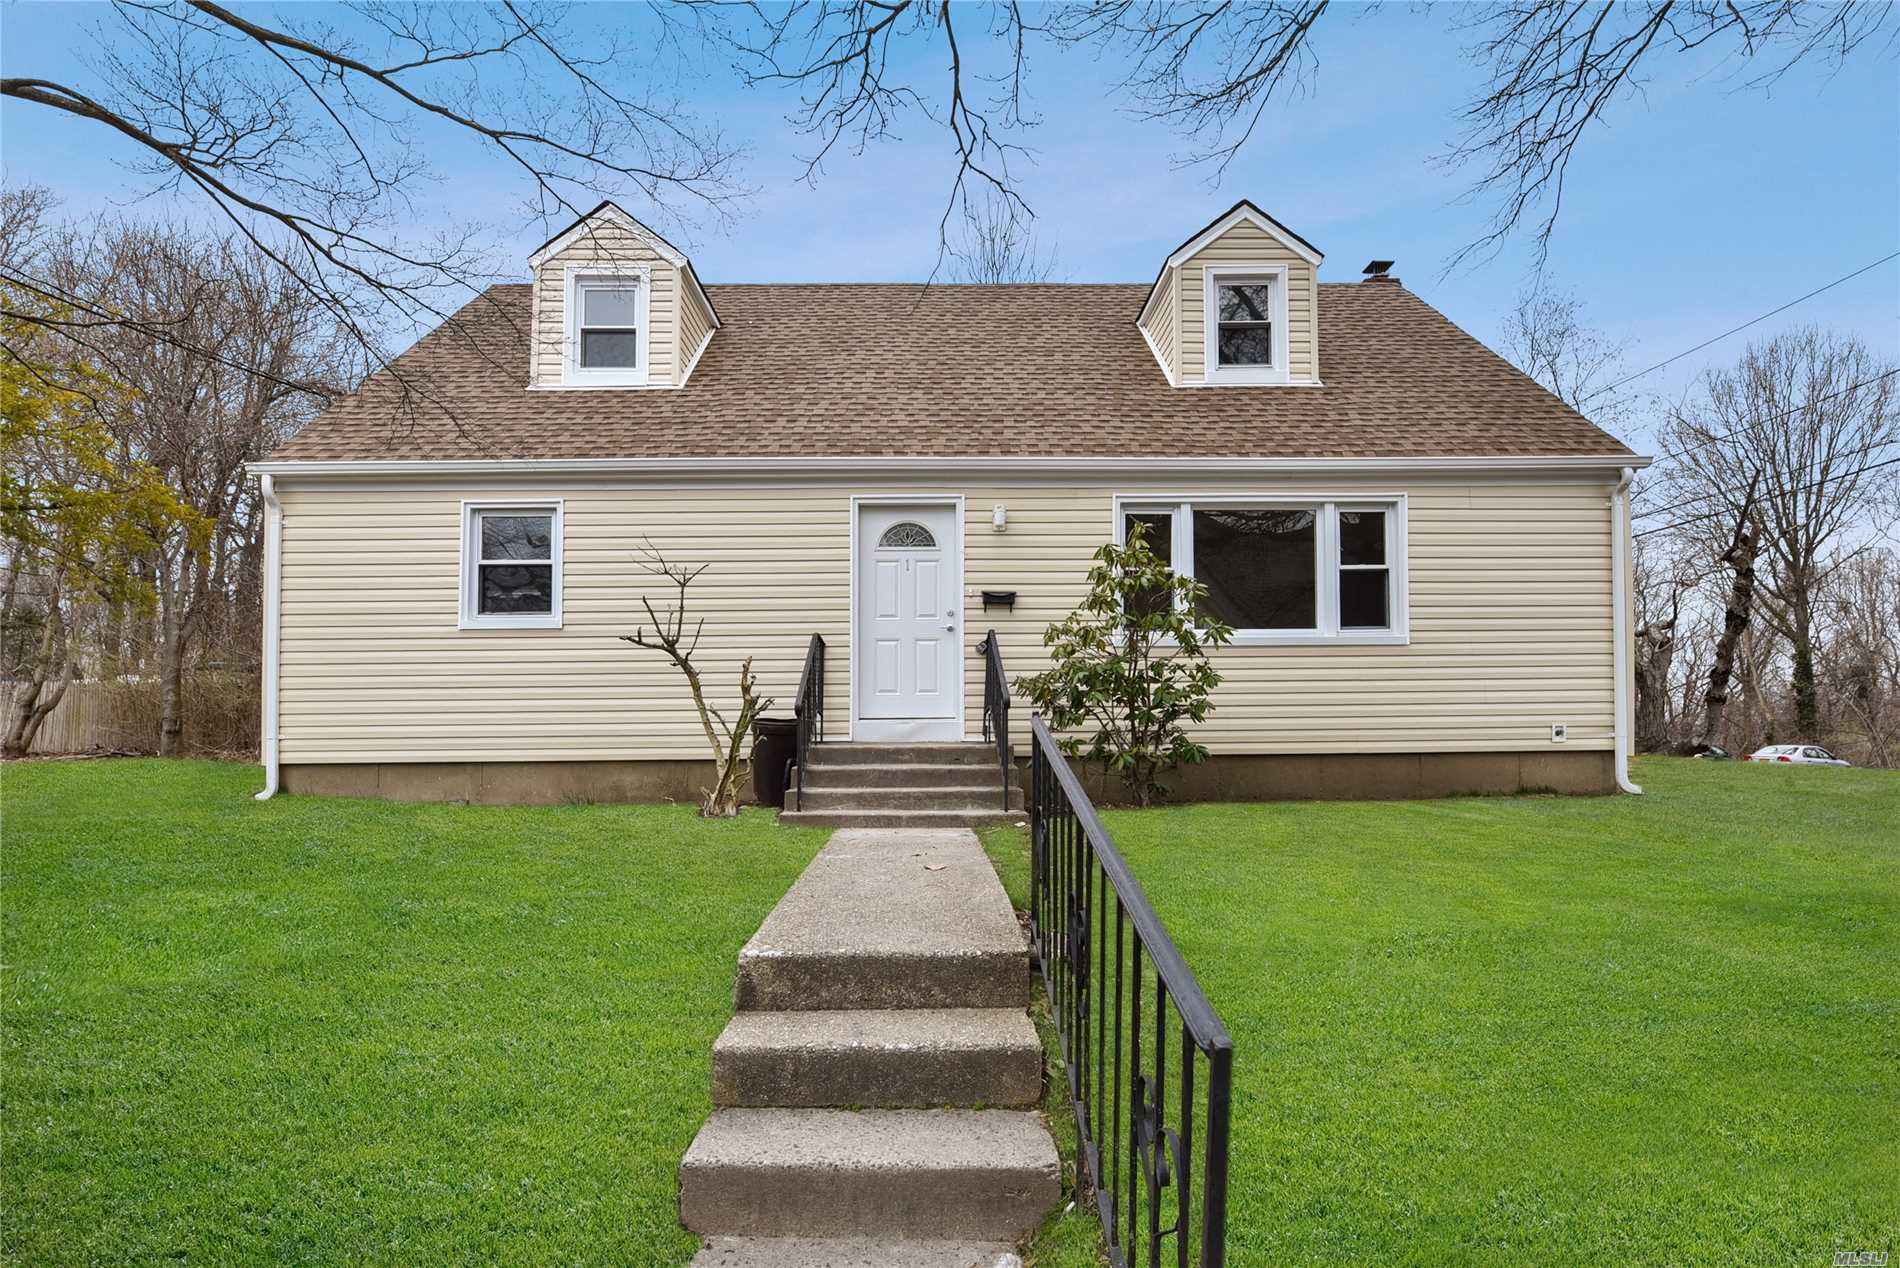 Glen Cove. Nicely Renovated Cape Home, New Kitchen with New Appliances, New Roof, New Siding, 4 Bedrooms, 3 Full Baths, Wood Floors, Tile Finished Basement with a Full Bath.